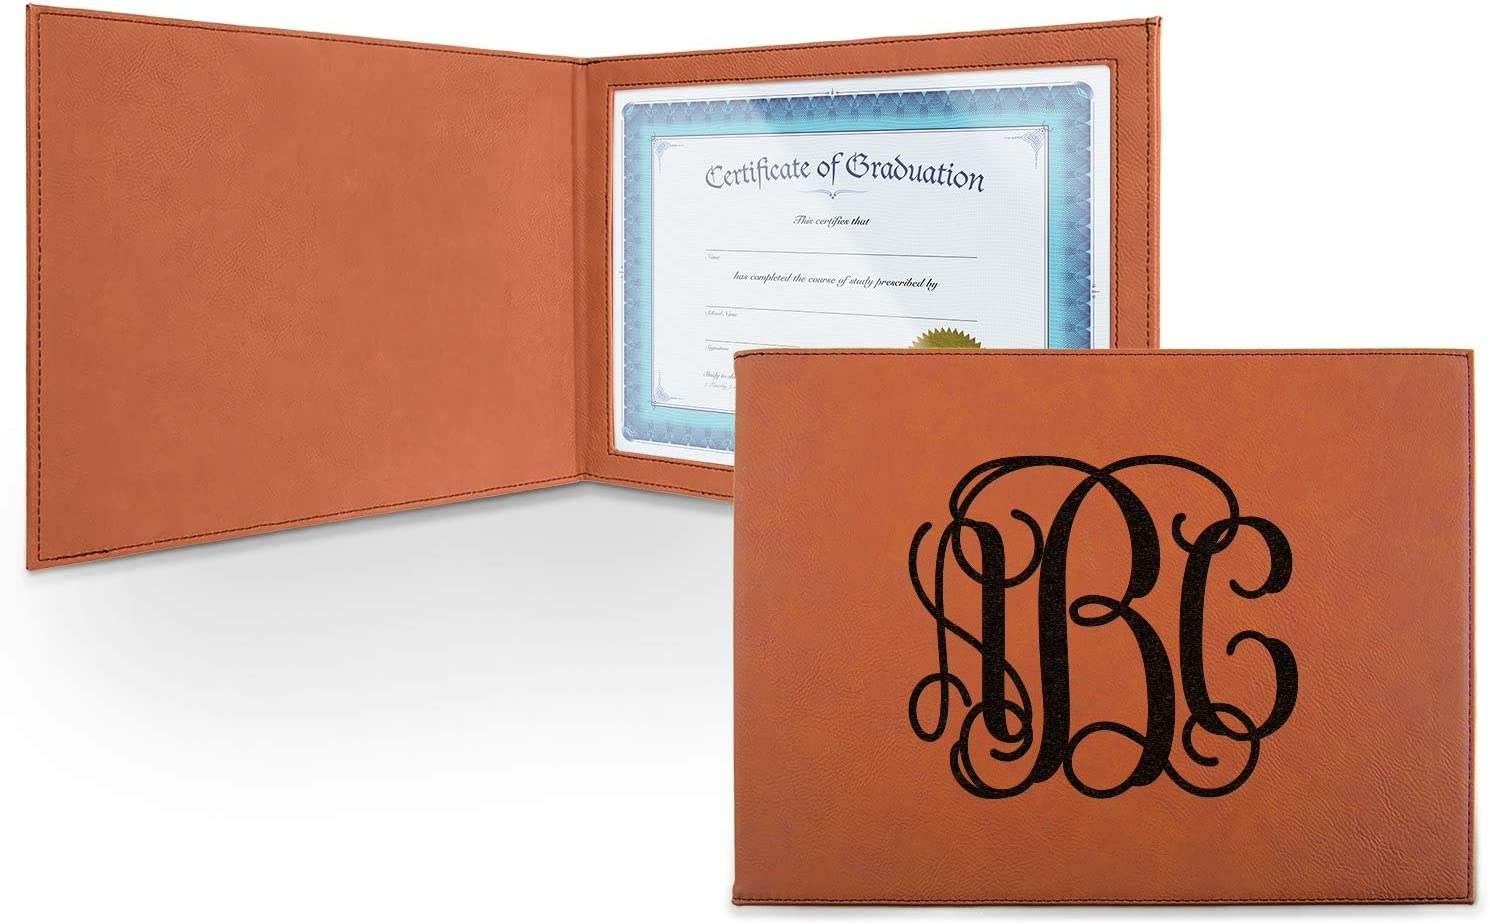 Monogram Leatherette Portland Mall Certificate Over item handling ☆ Holder - Personalized Front